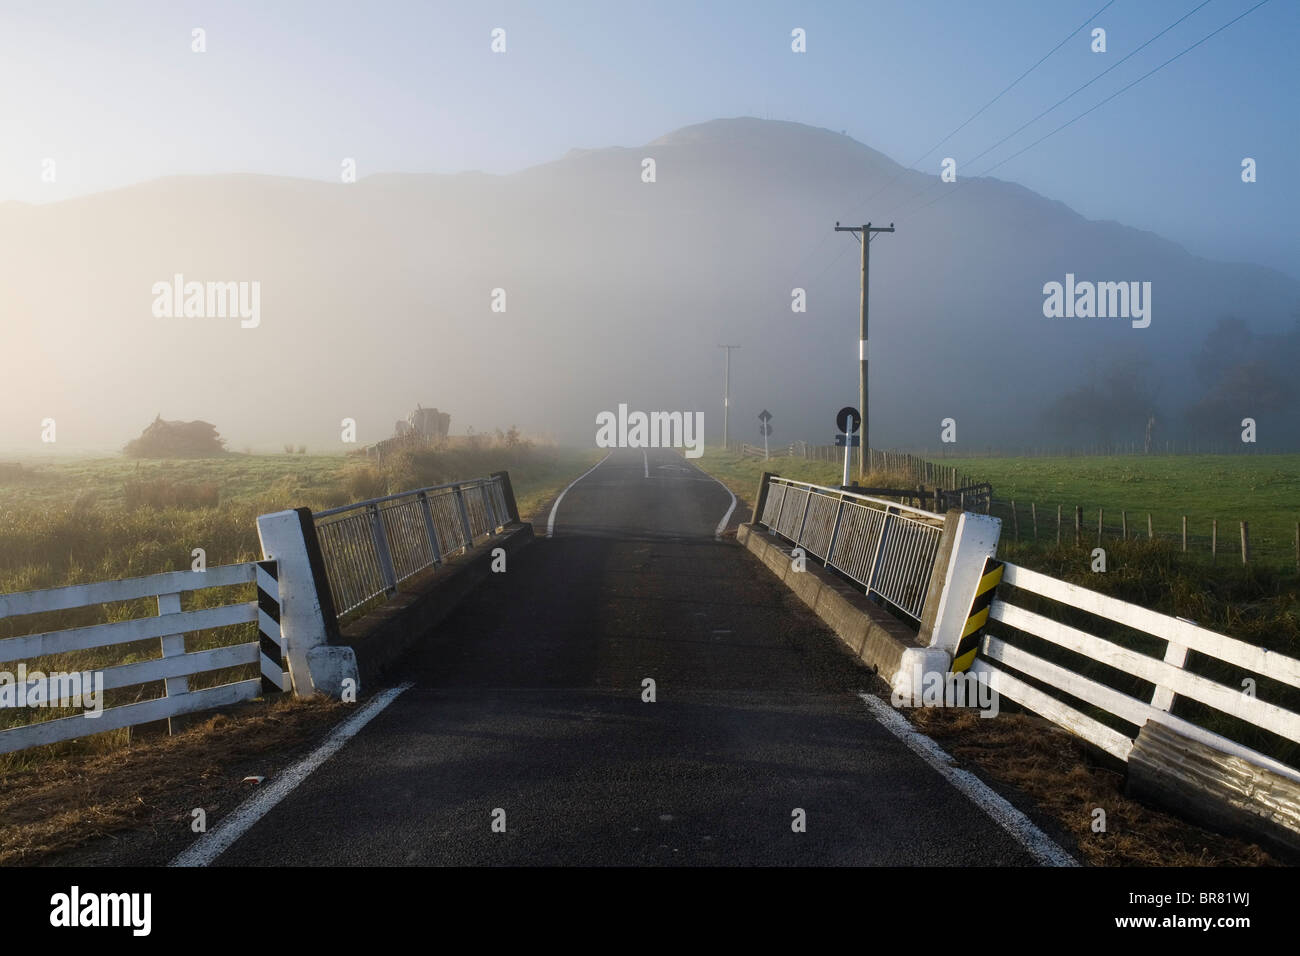 A misty road bridge in Tolaga Bay on the East Cape, New Zealand. - Stock Image